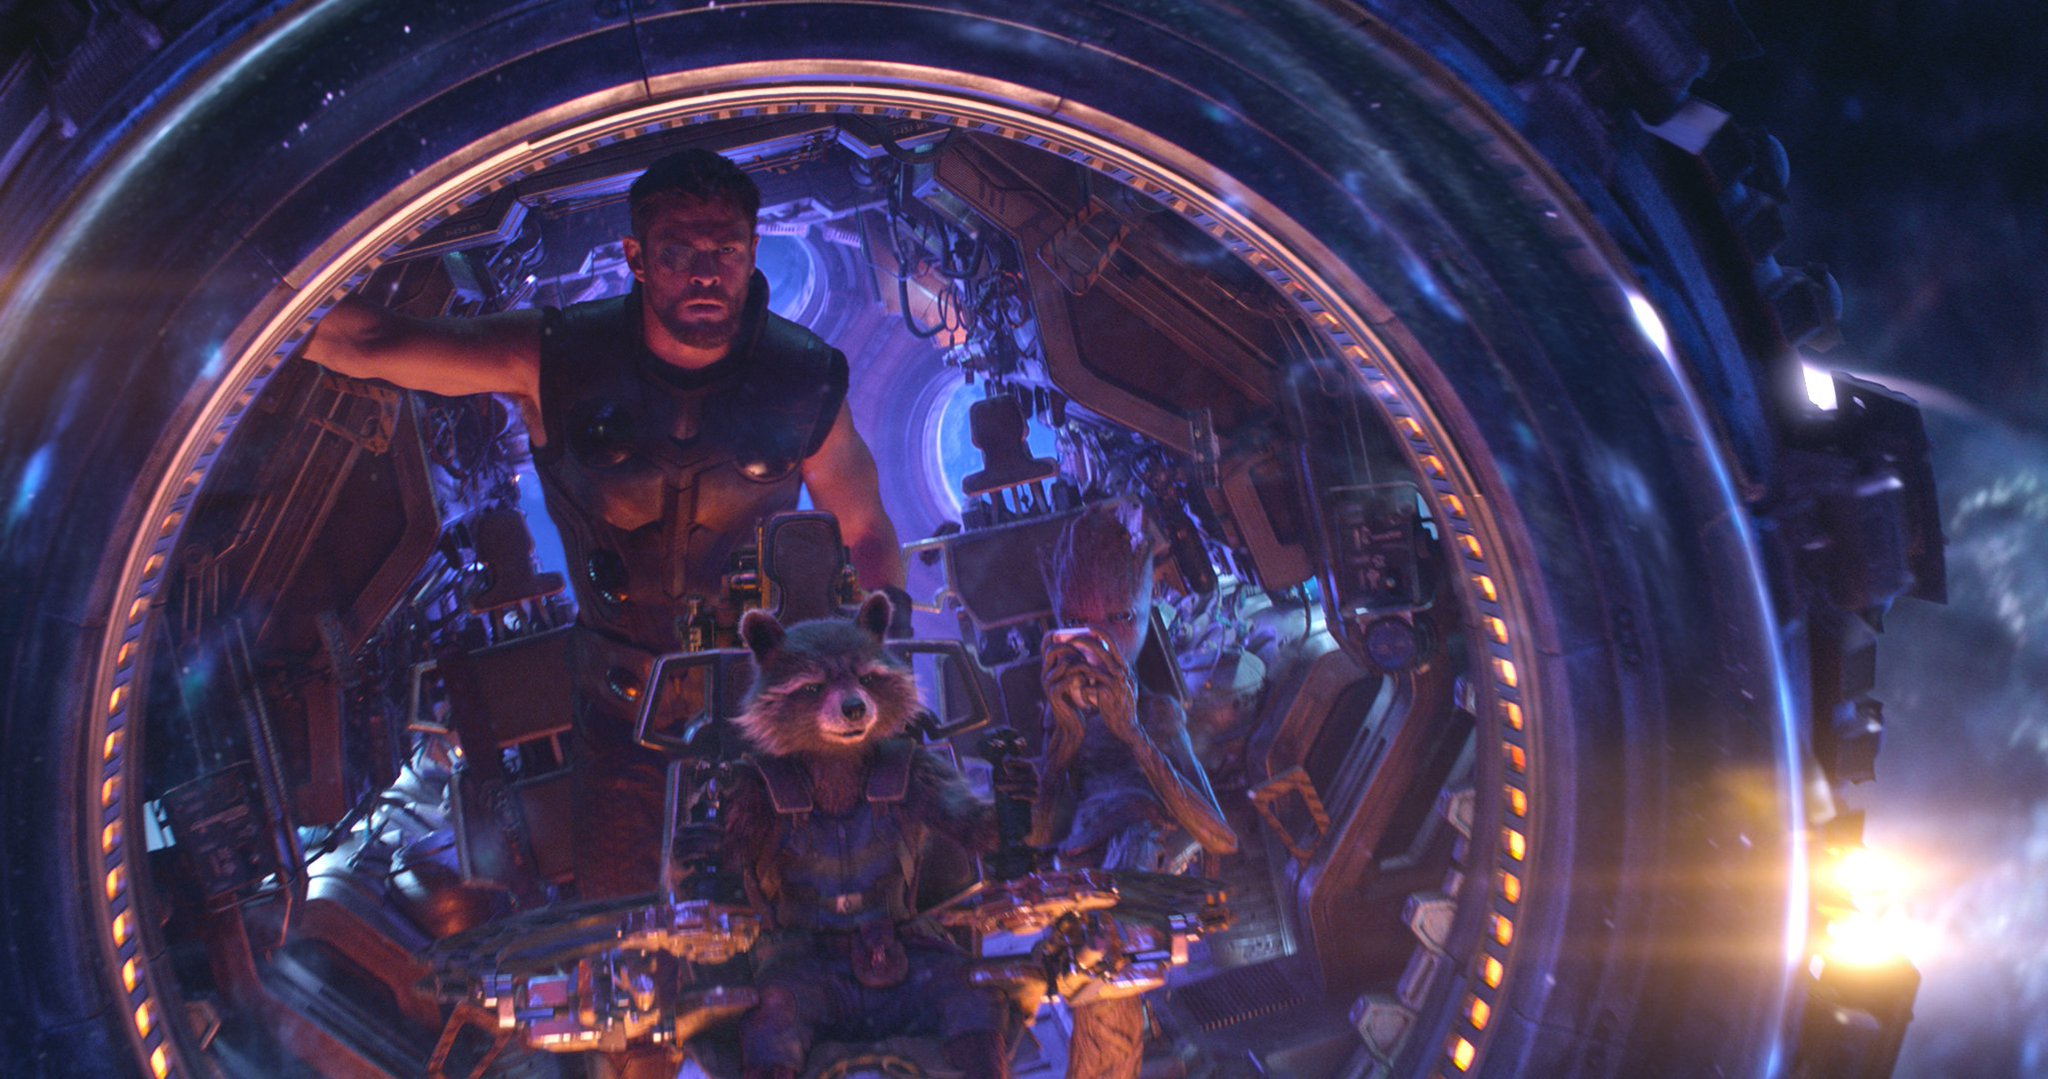 Check out these new images from @Avengers: #InfinityWar. Destiny arrives April 27th. (3/3) https://t.co/CNutmqo8QH